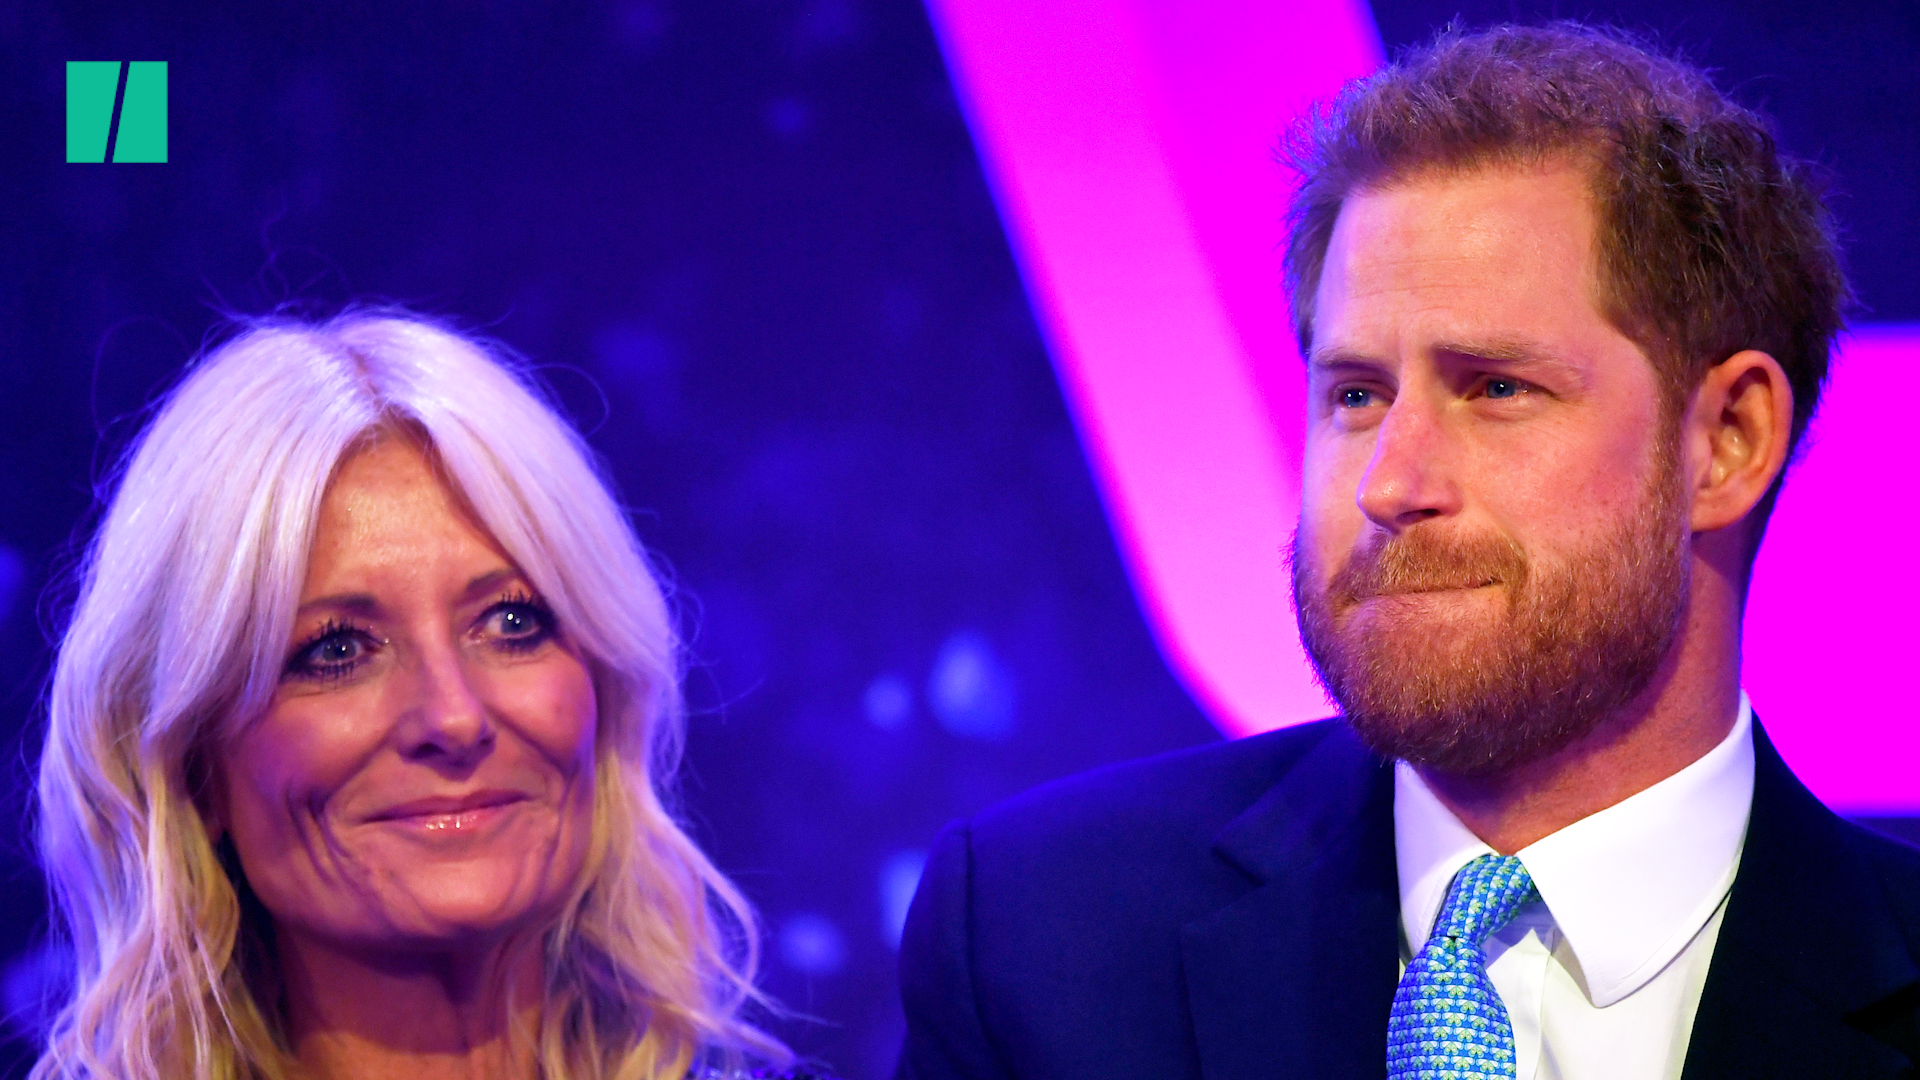 Prince Harry Can't Stop The Tears During Poignant Speech About Parenthood